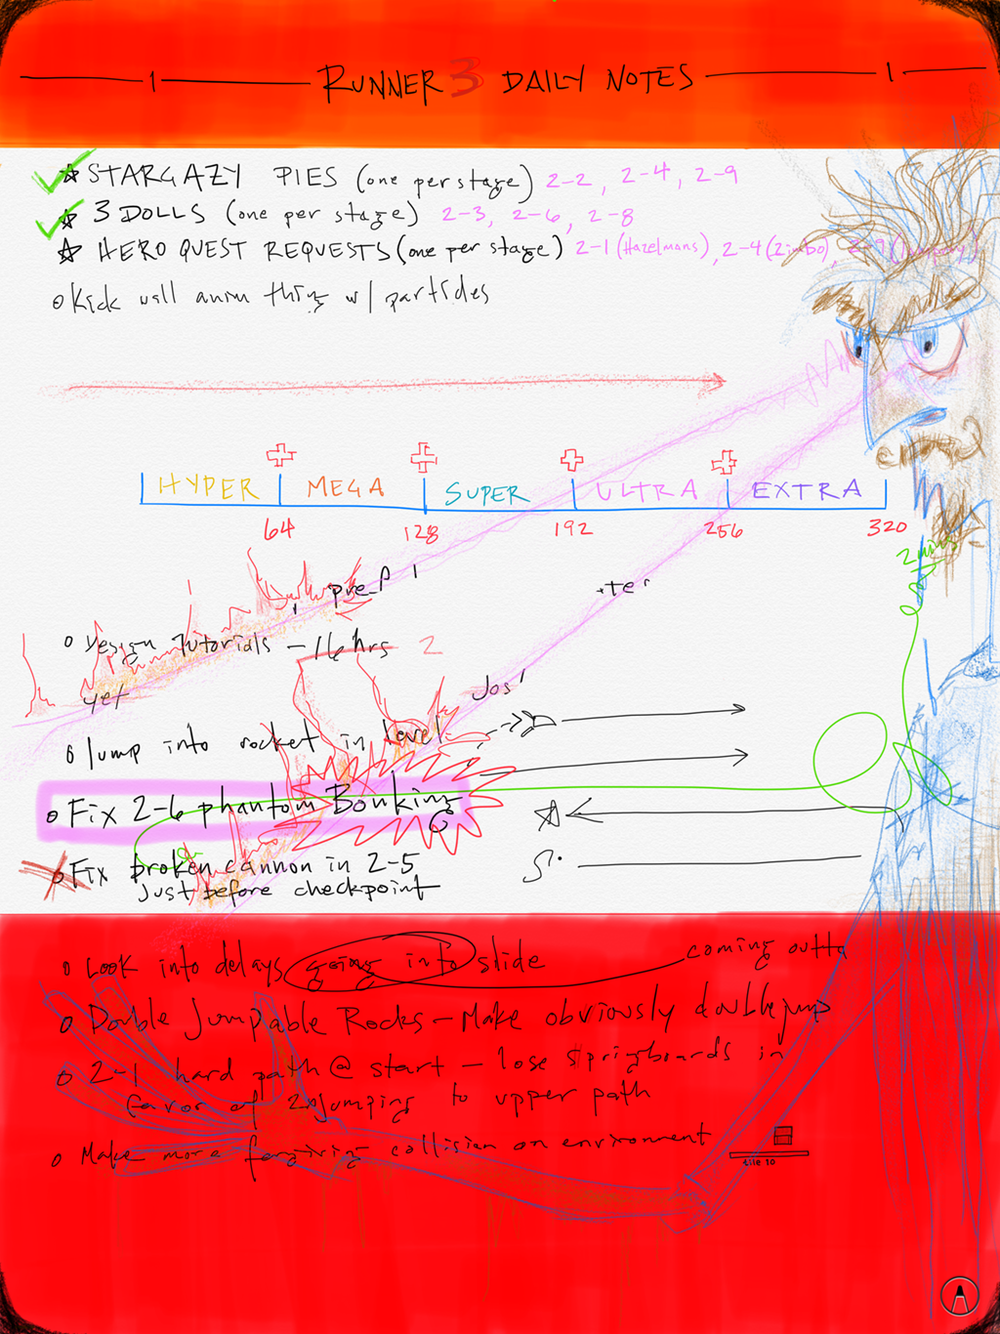 Runner3 - Daily Notes - 20161205.PNG